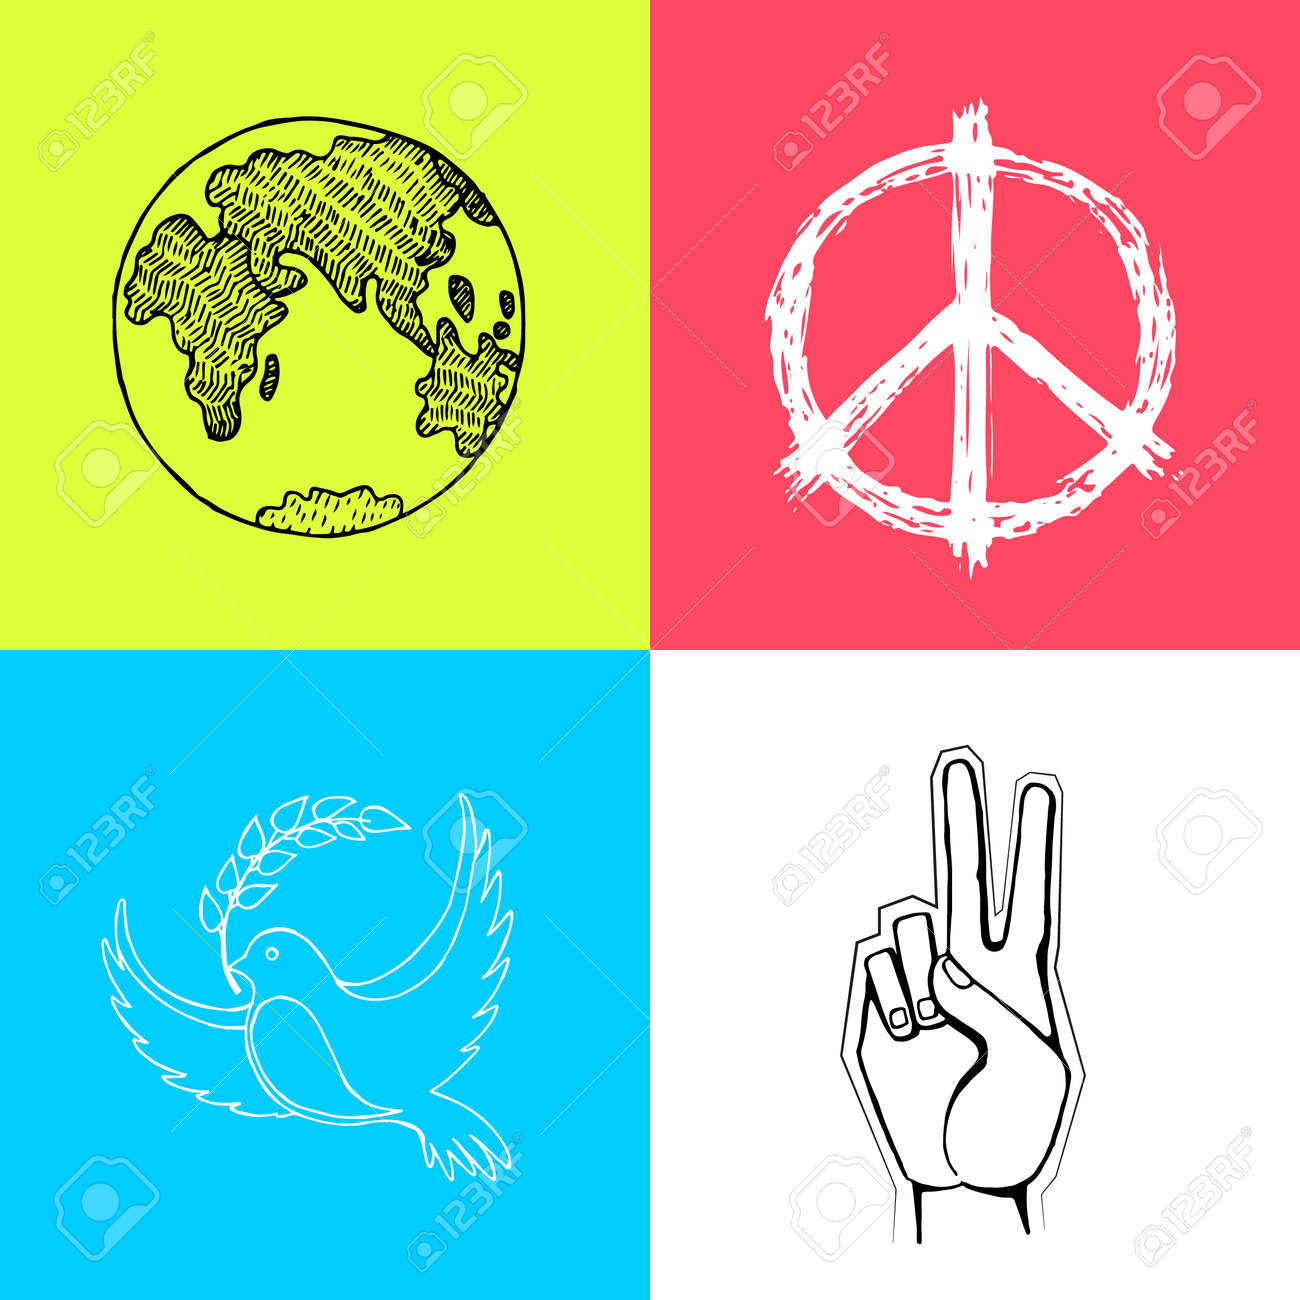 Multicolored Posters For International Peace Day Vector Famous